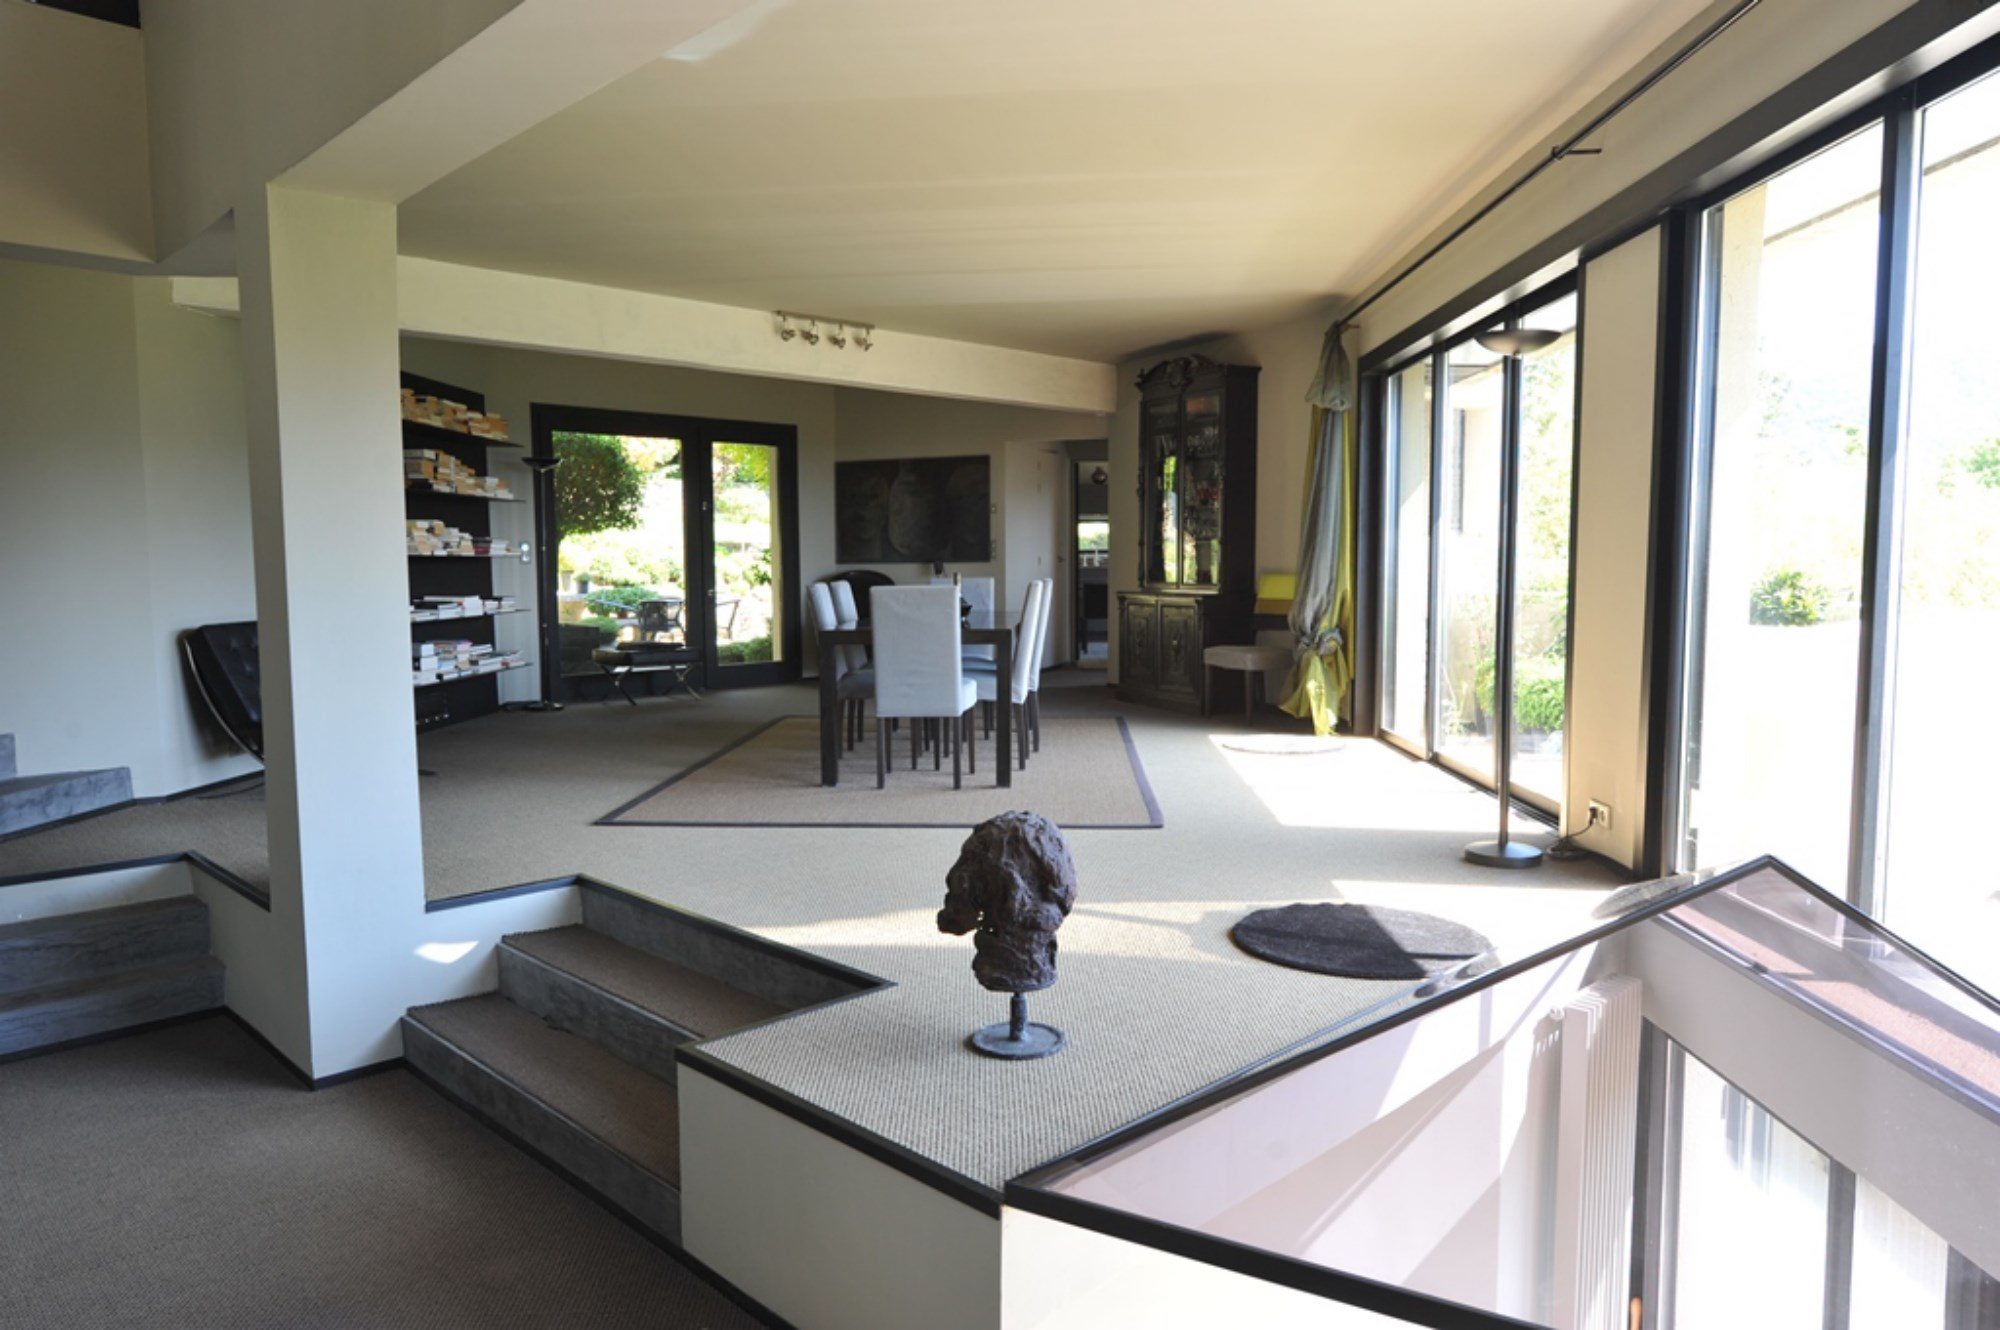 Ventes en vente en luberon maison contemporaine avec for Logement atypique